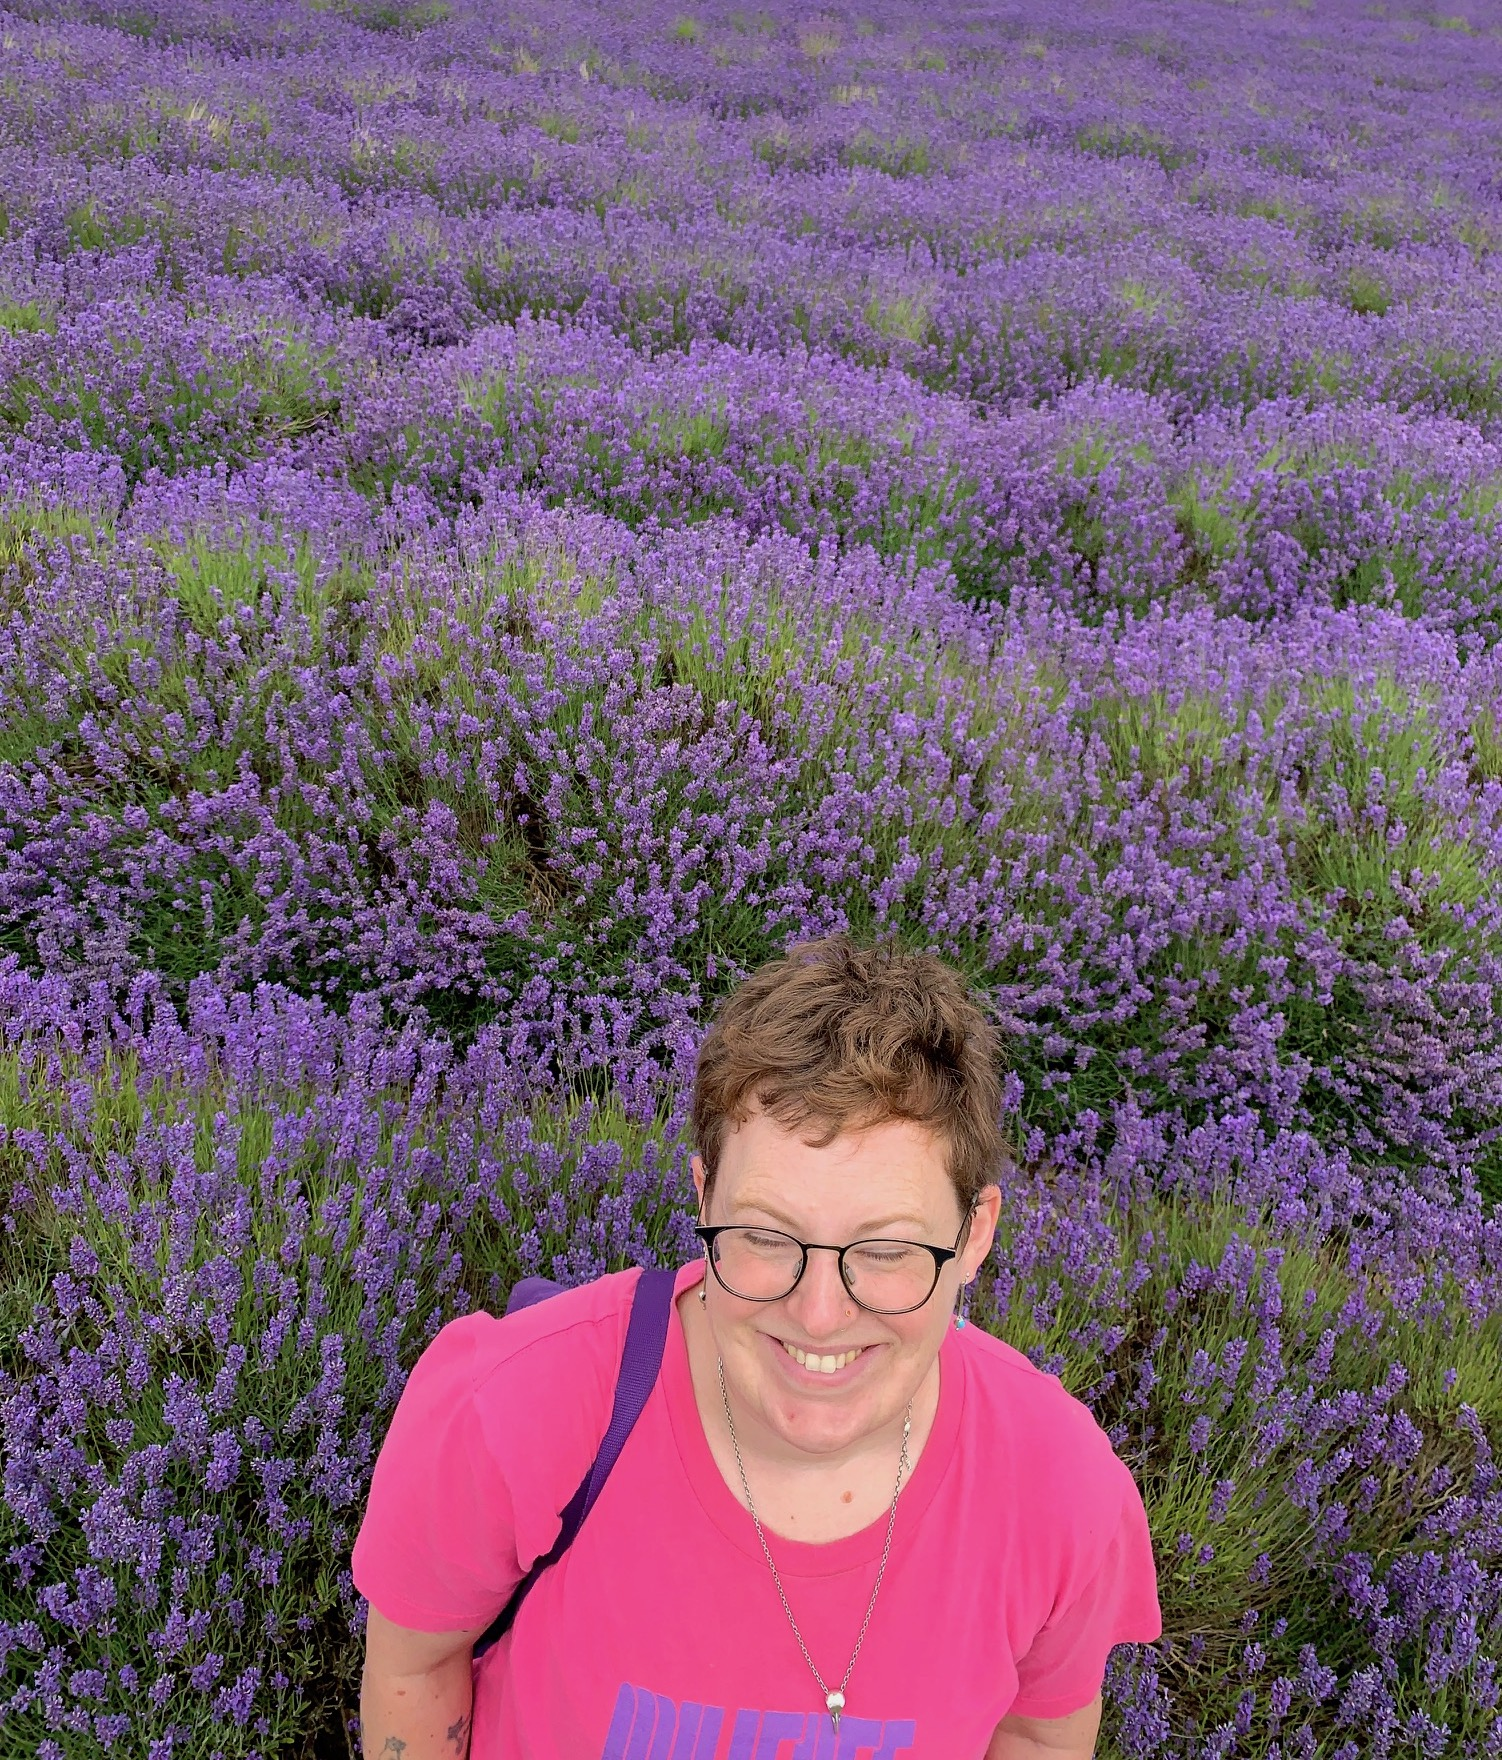 person with short hair and pink shirt standing in lavender field